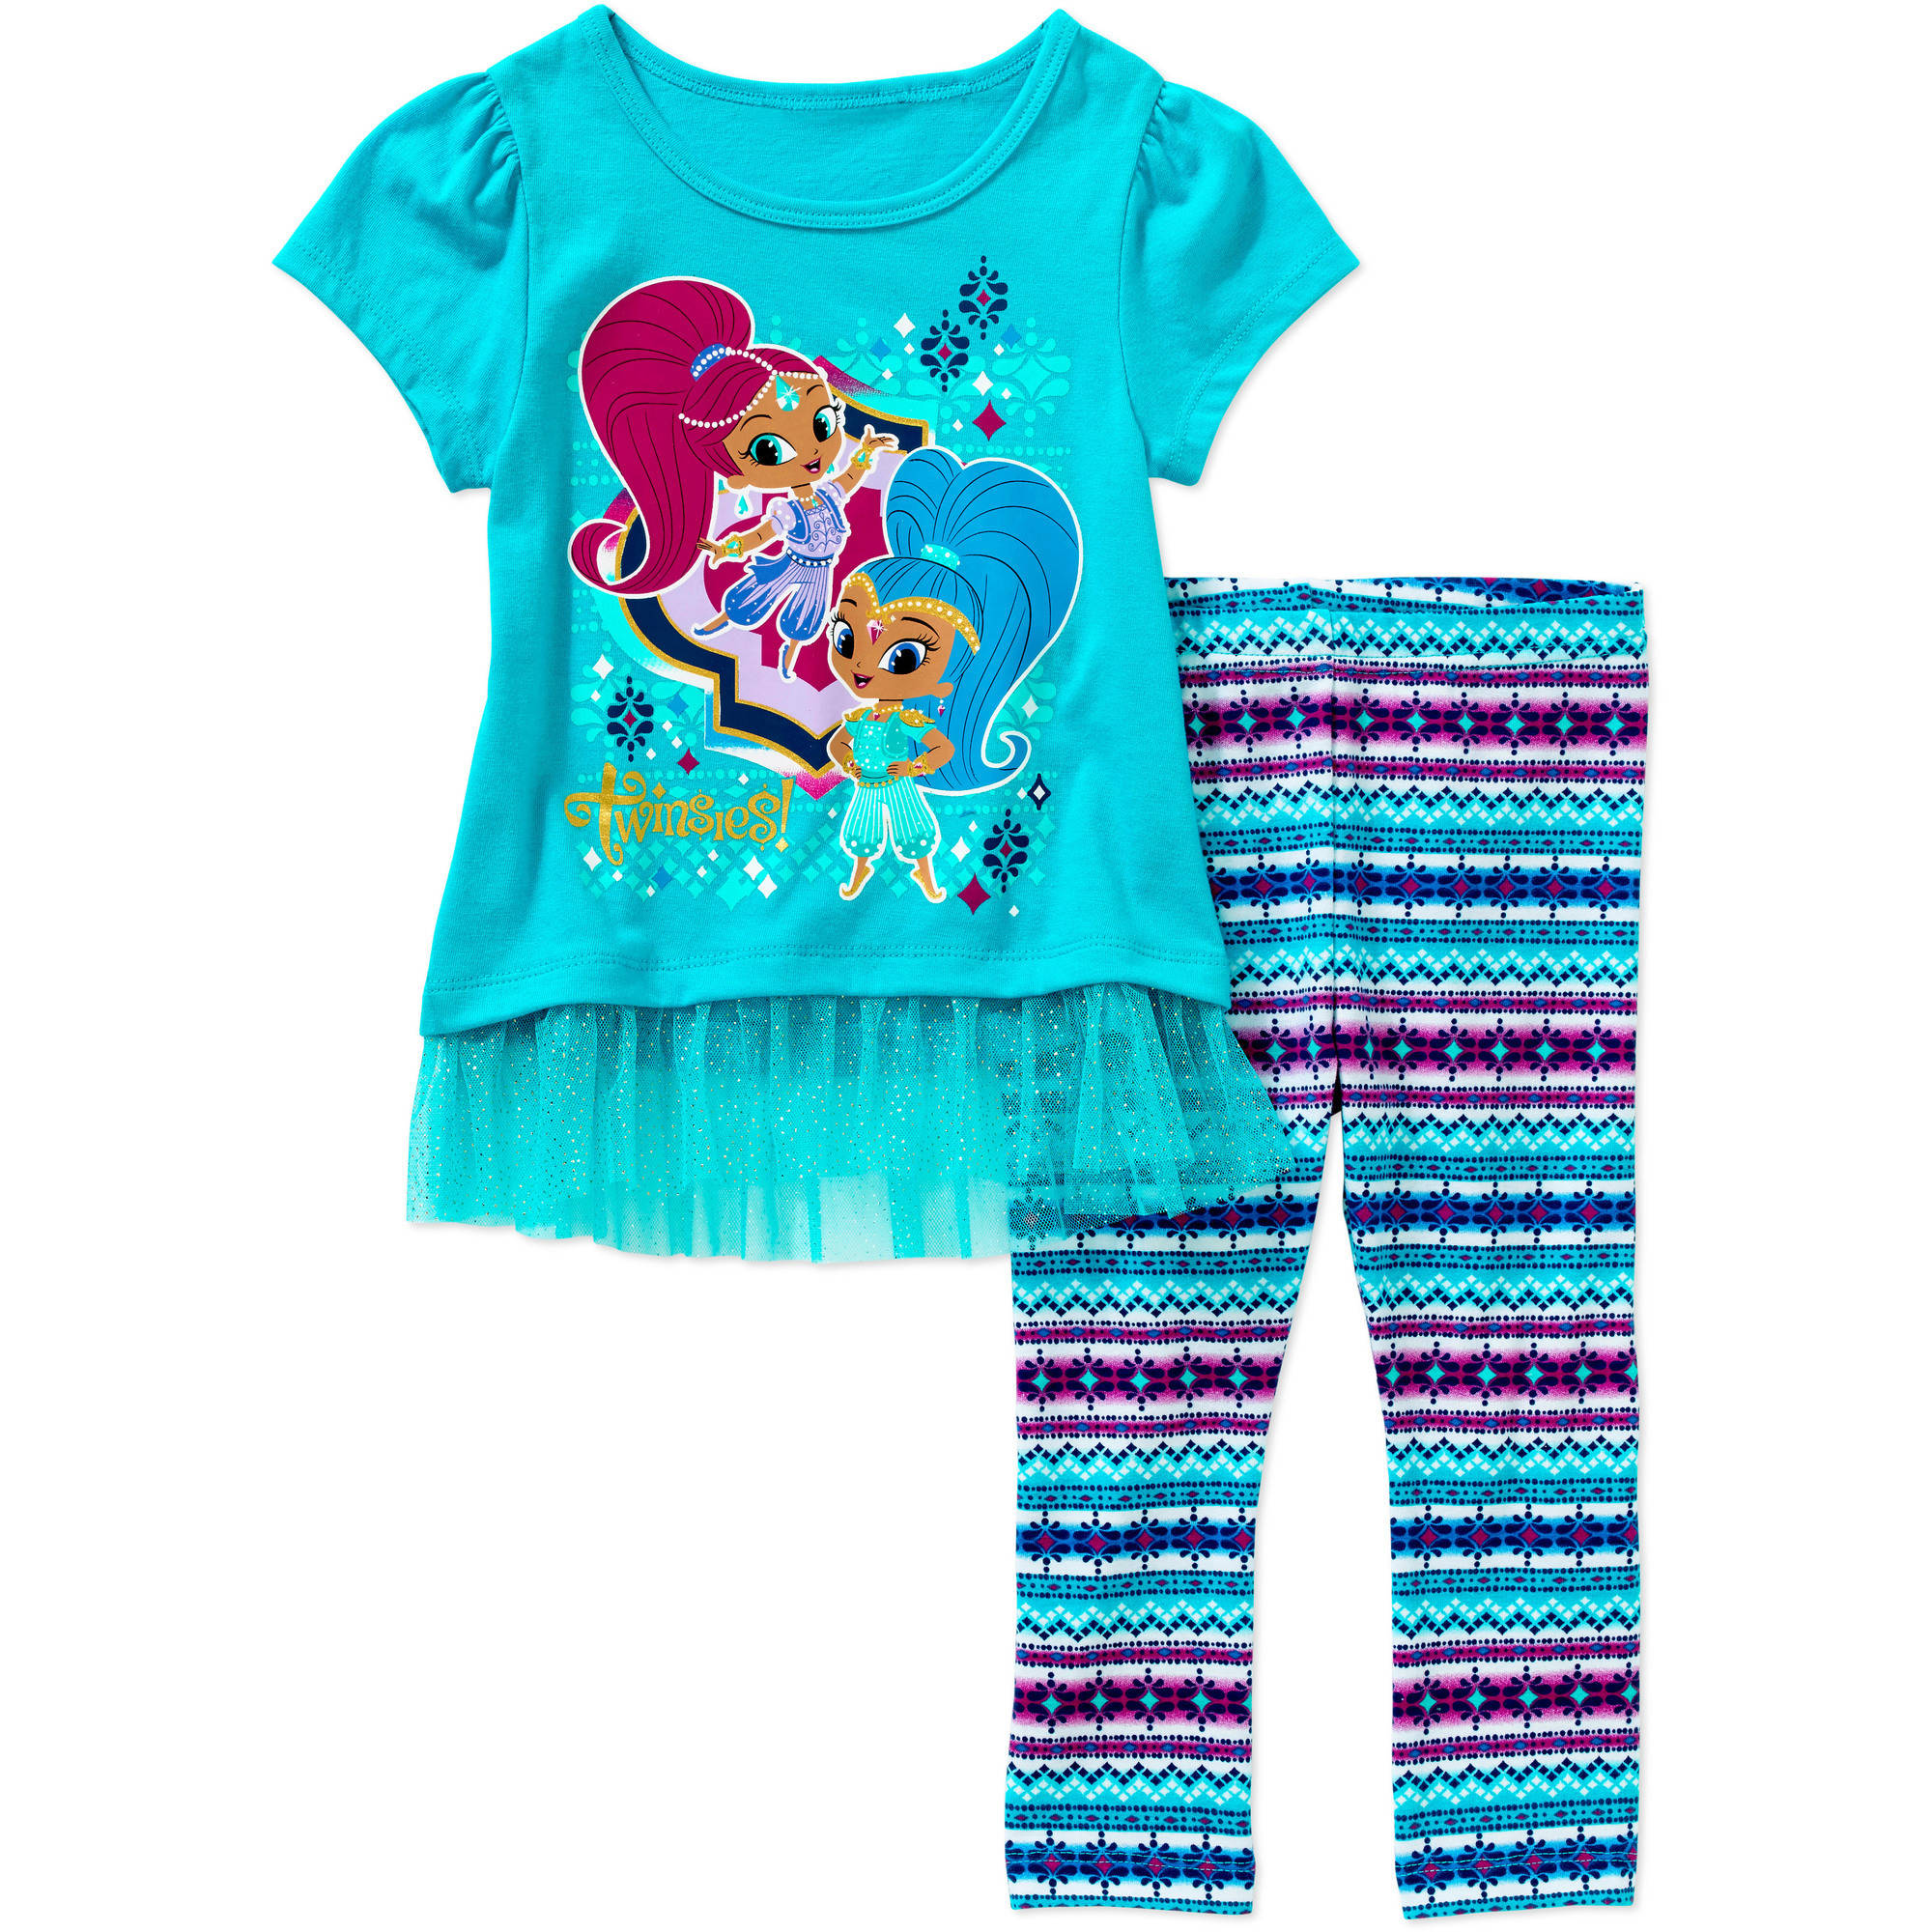 Shimmer and Shine Toddler Girl Knit Tunic and Leggings Outfit Set